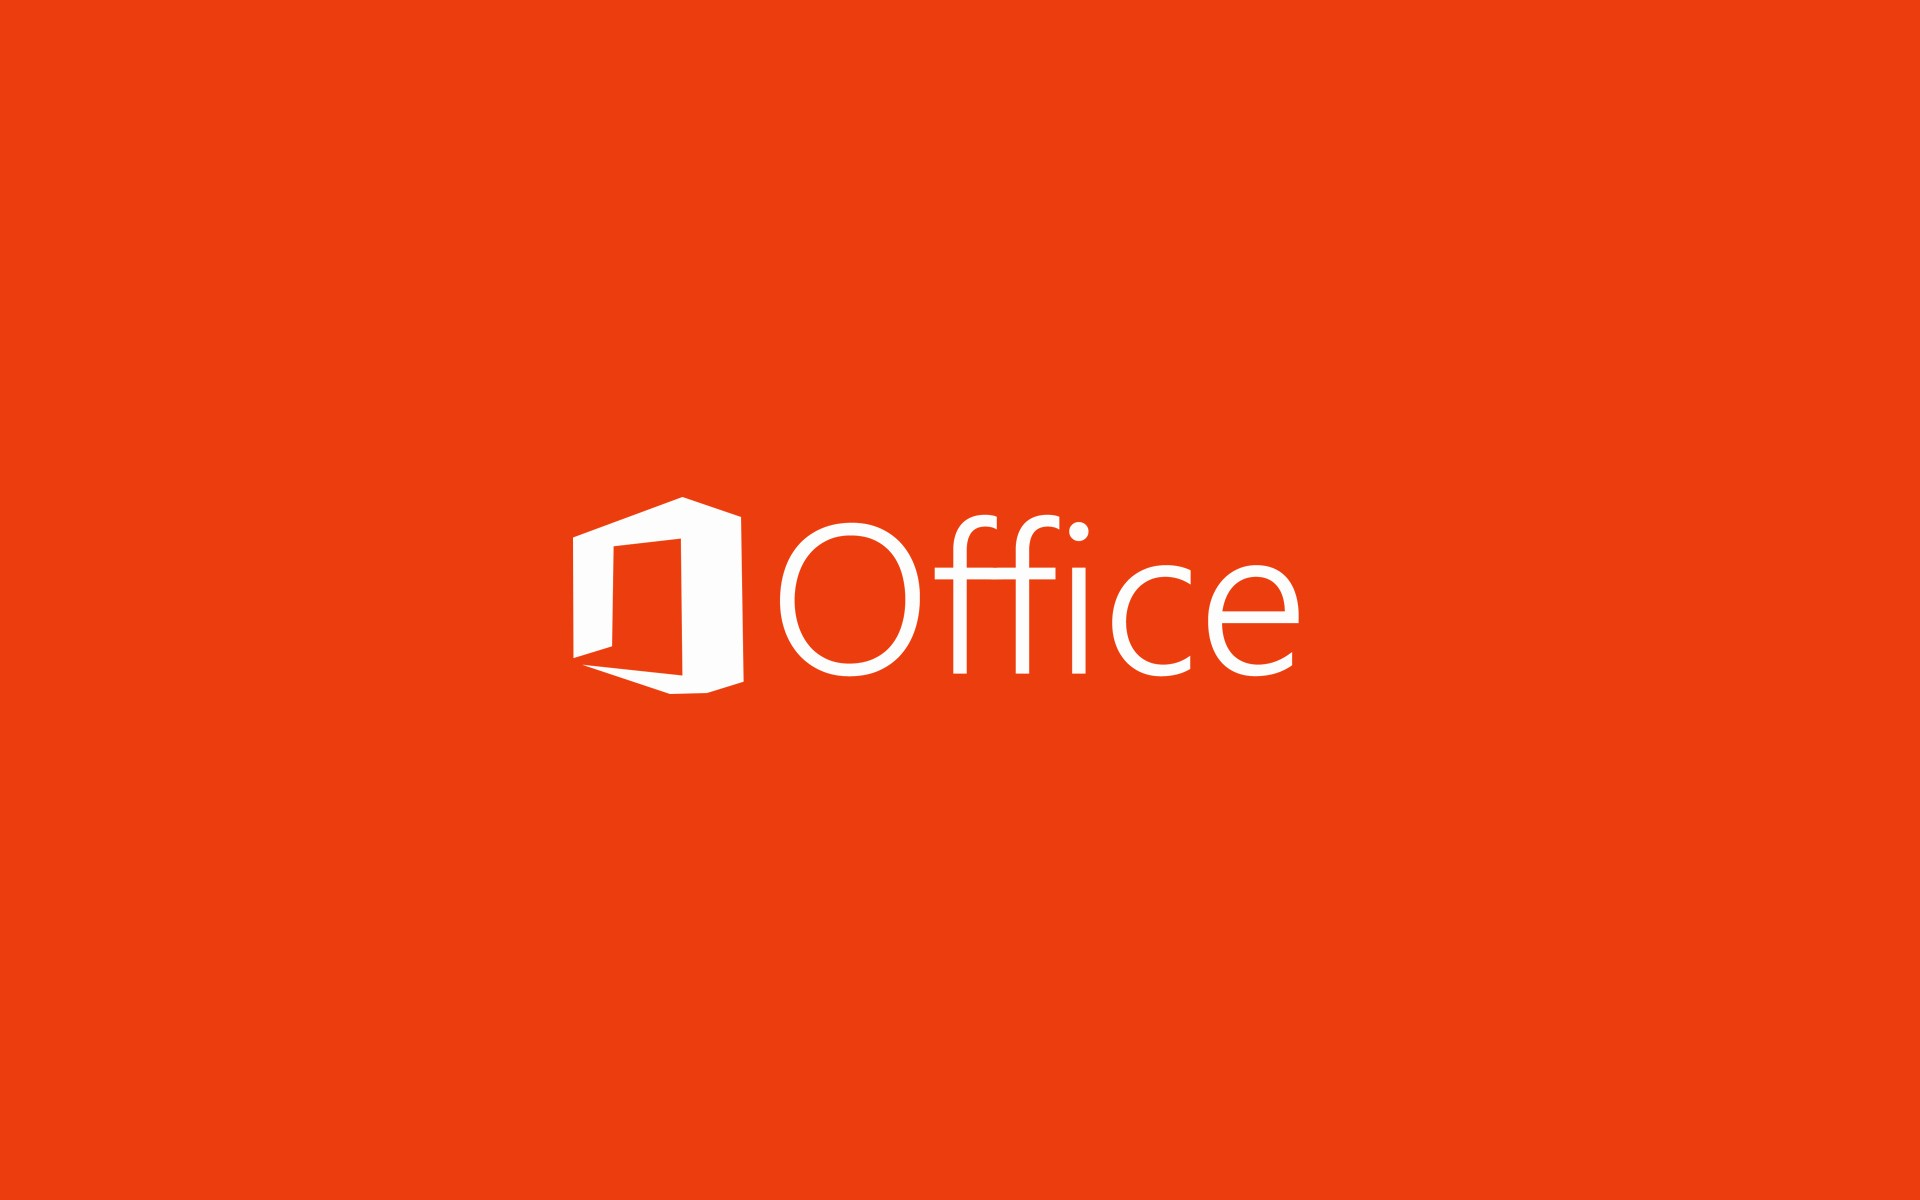 Office 2013 Background theme Download Fresh Microsoft Fice Wallpaper themes Wallpapersafari